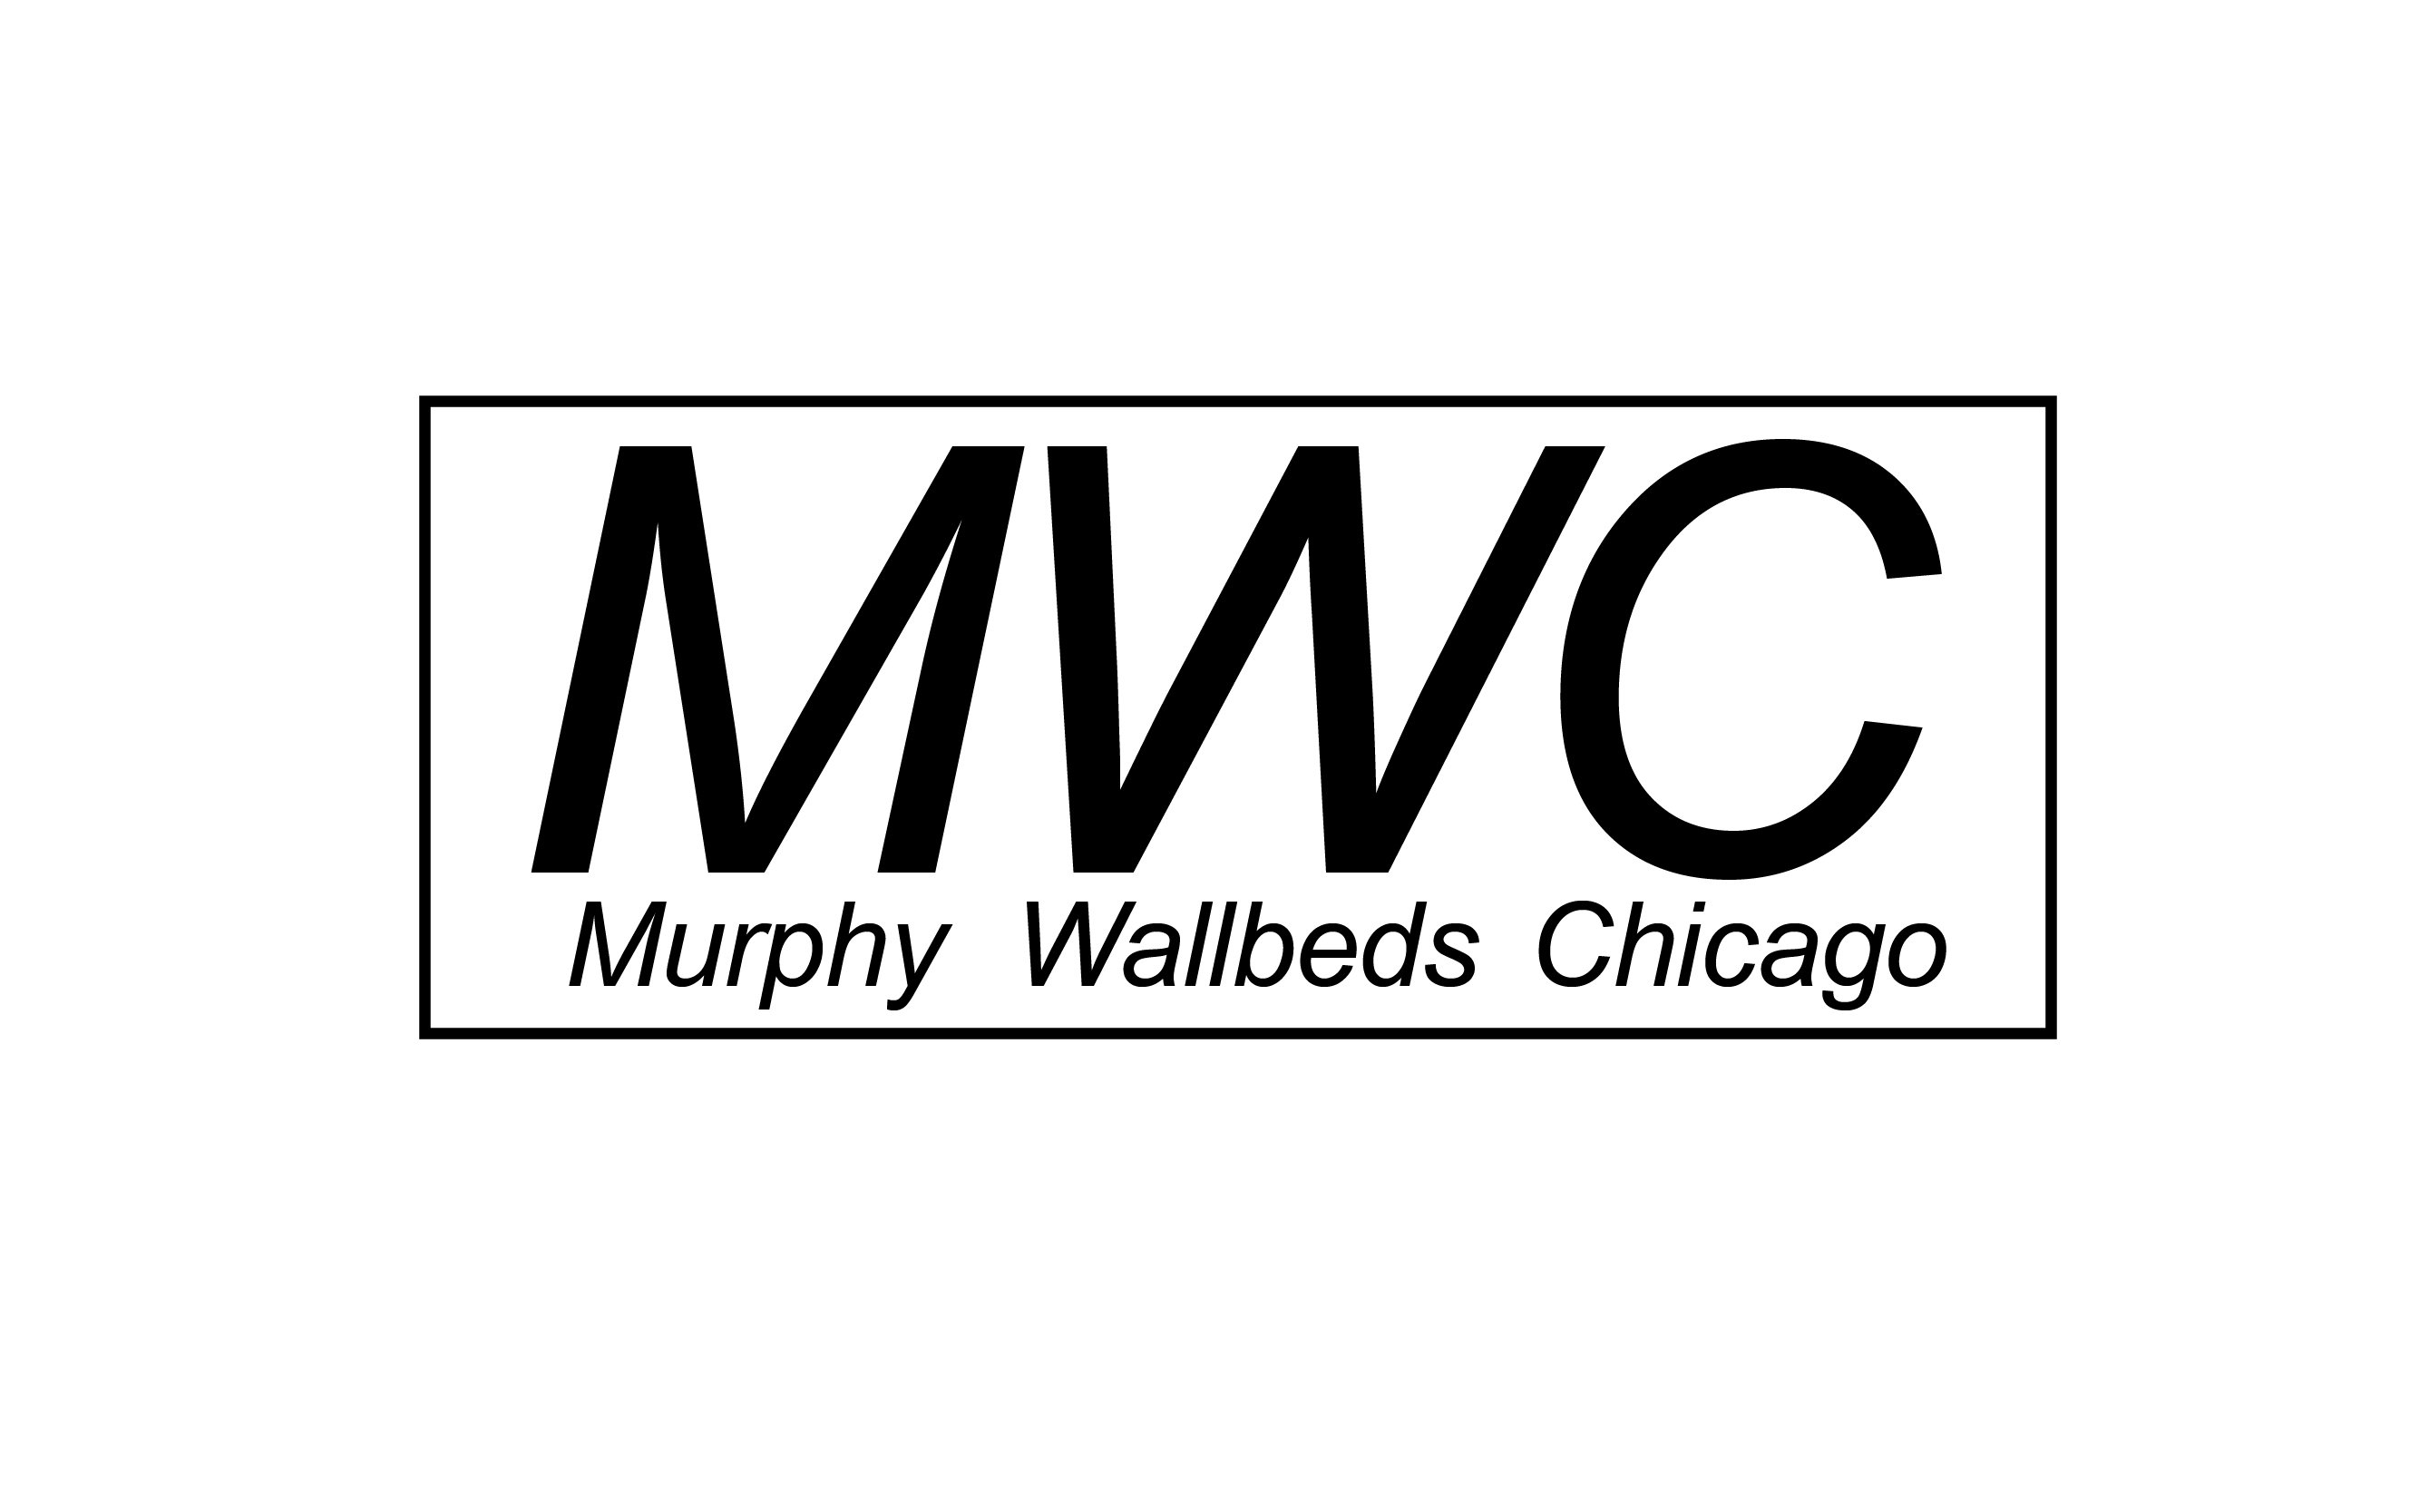 Murphy wallbeds murphy wallbeds chicago amipublicfo Images